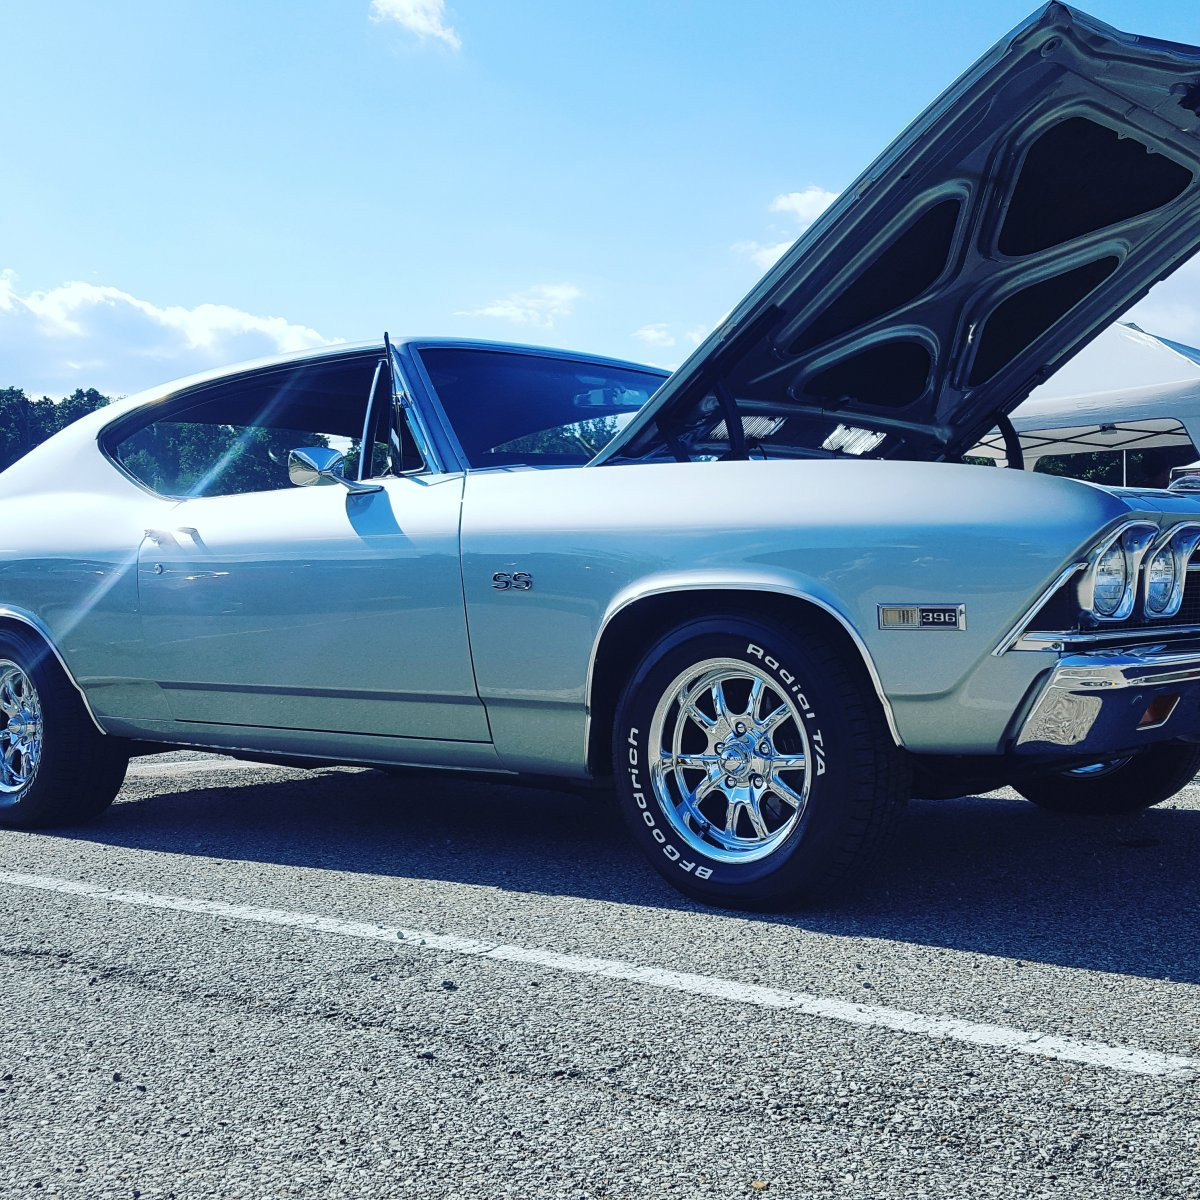 1968 Chevelle with 15x7 and 15x8 Ridler 650 Wheels